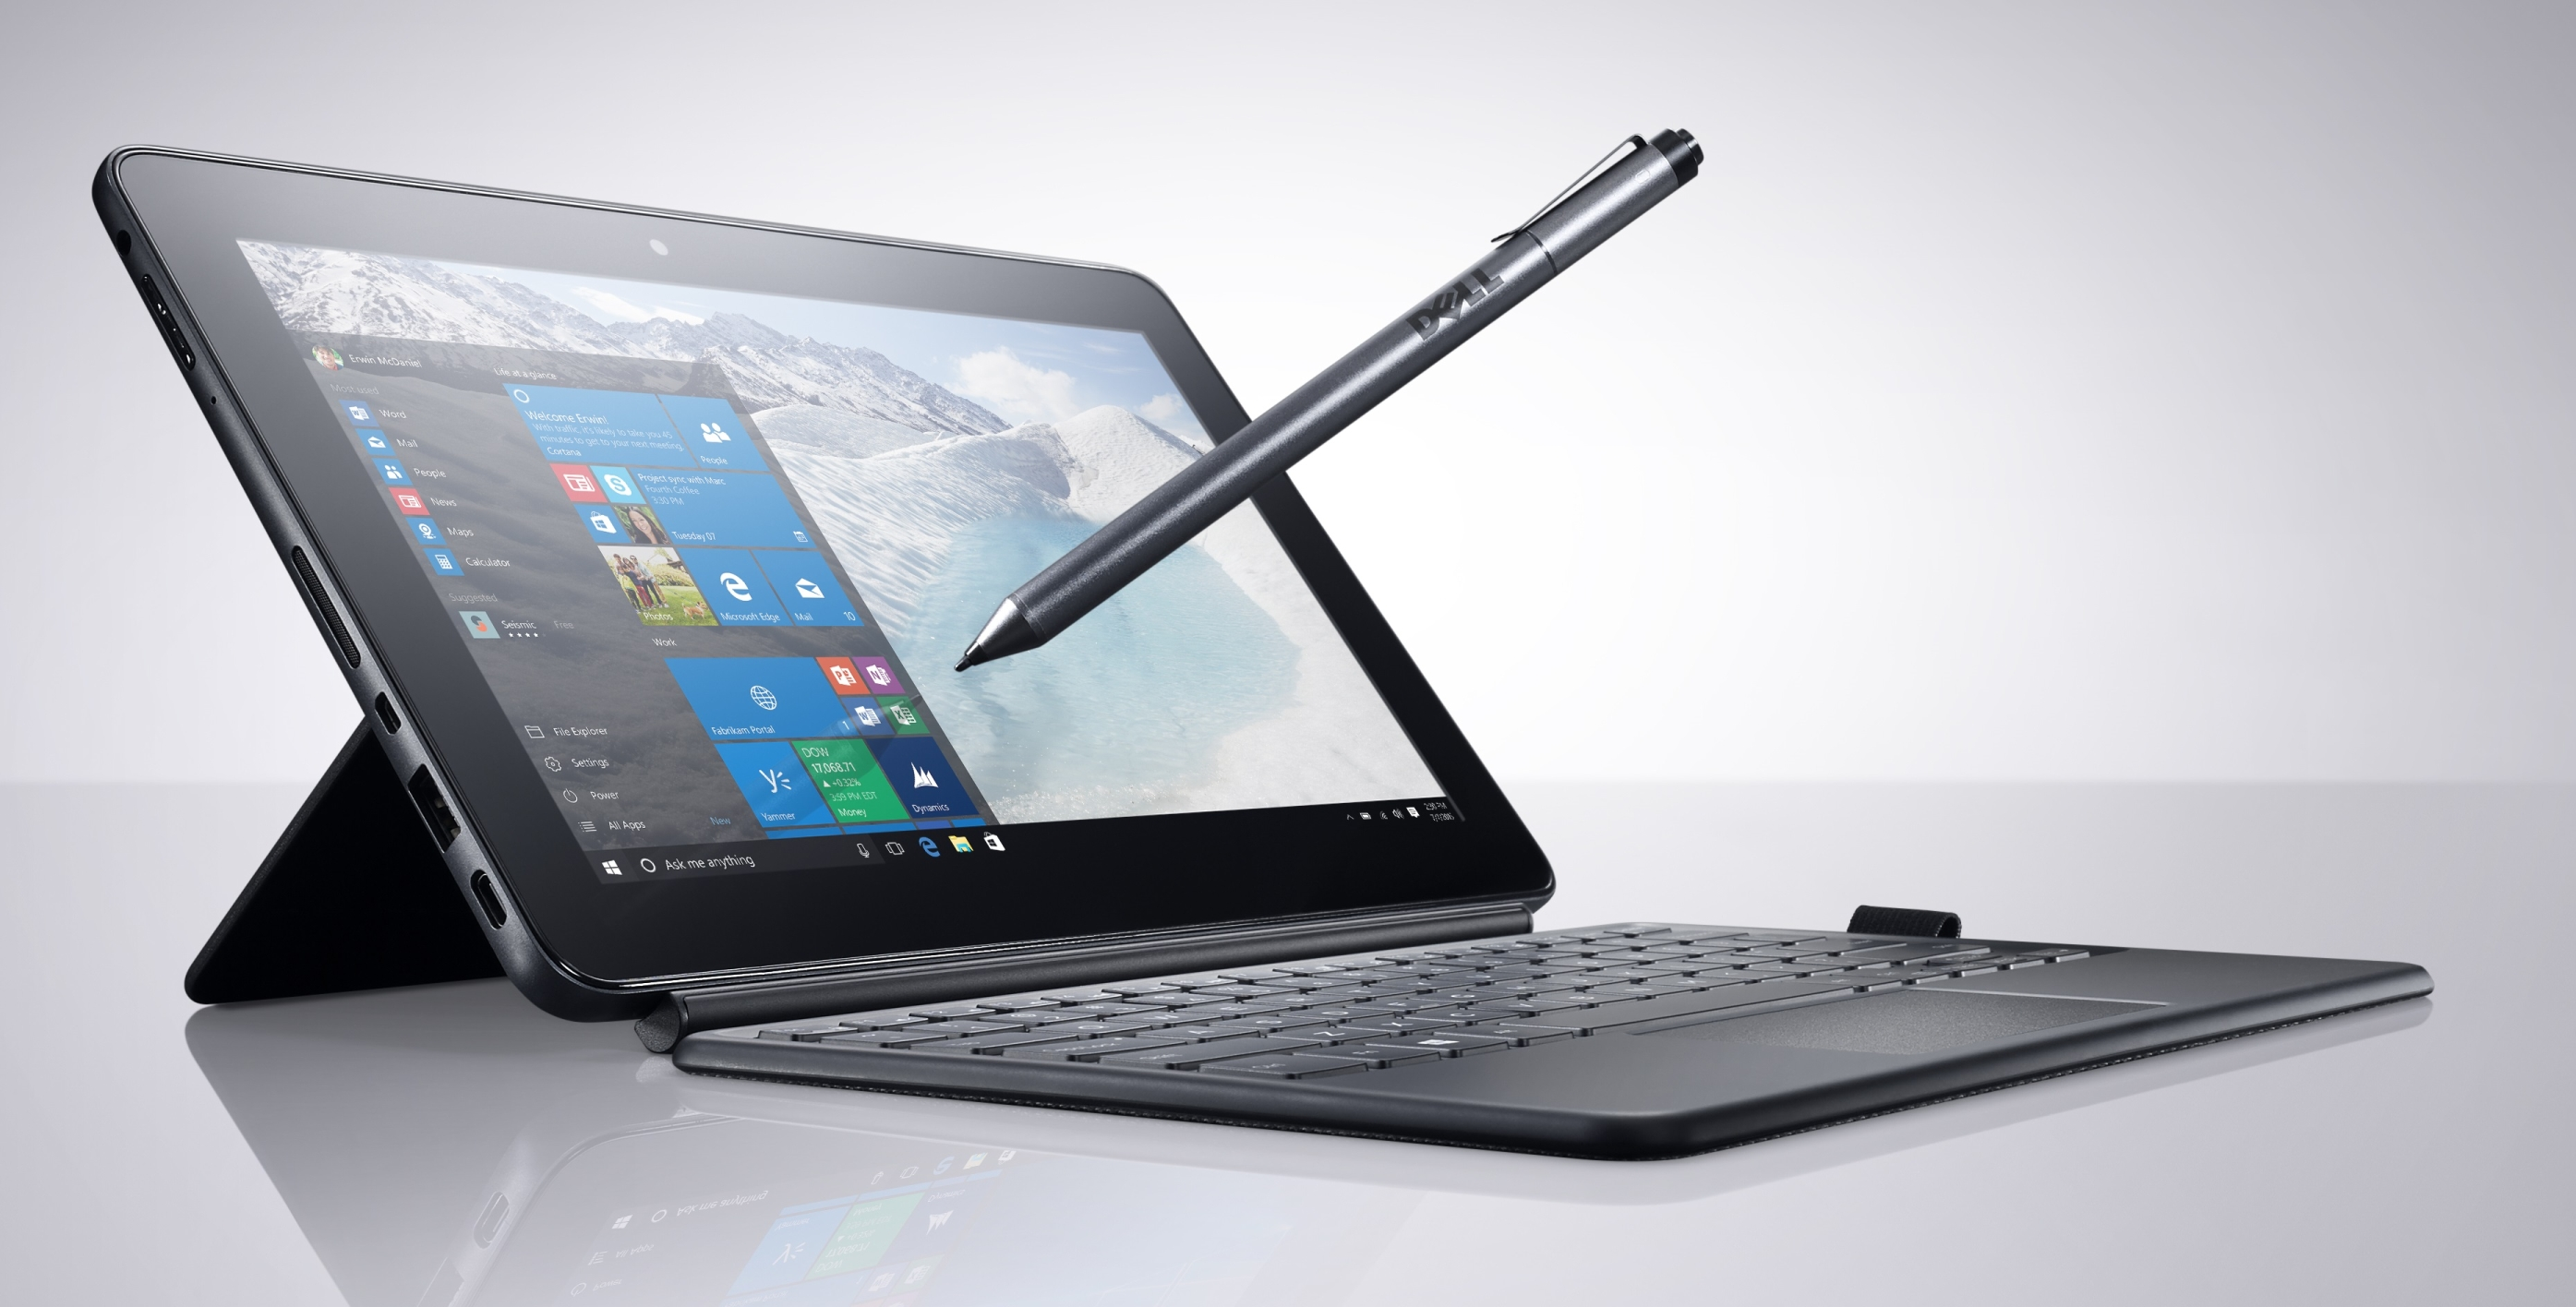 Dell Latitude 11 5000 Announced